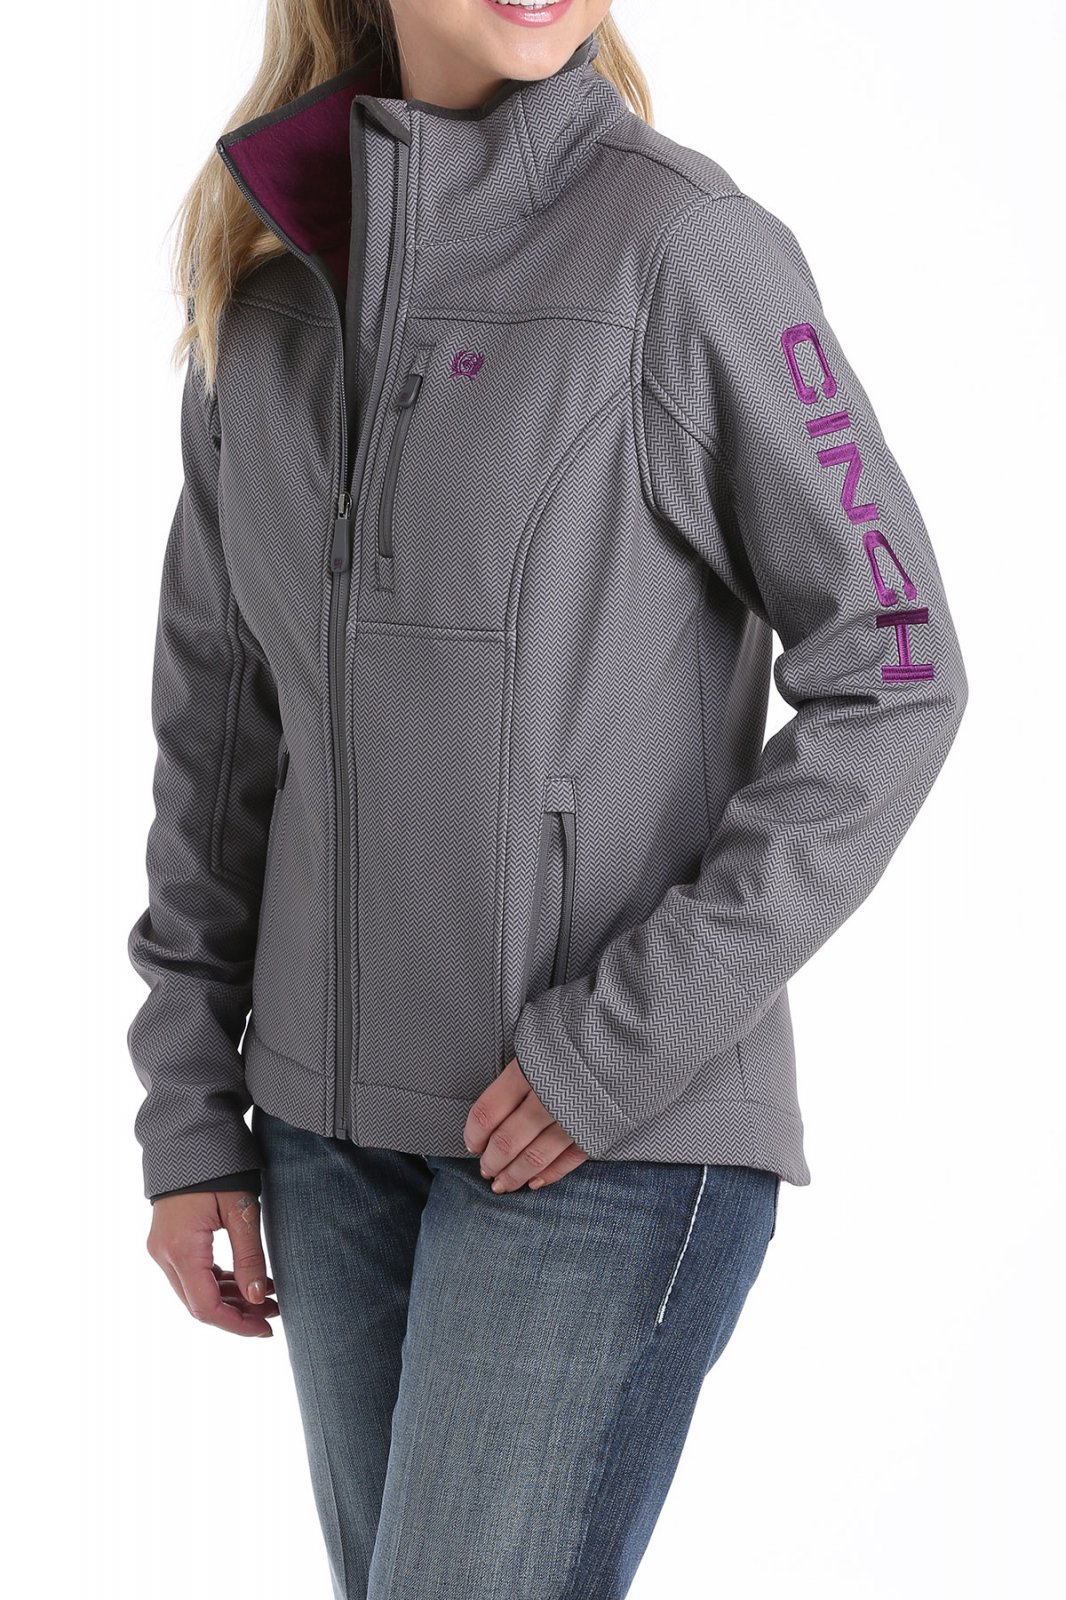 Printed Bonded Carry & Conceal Jacket from Cinch